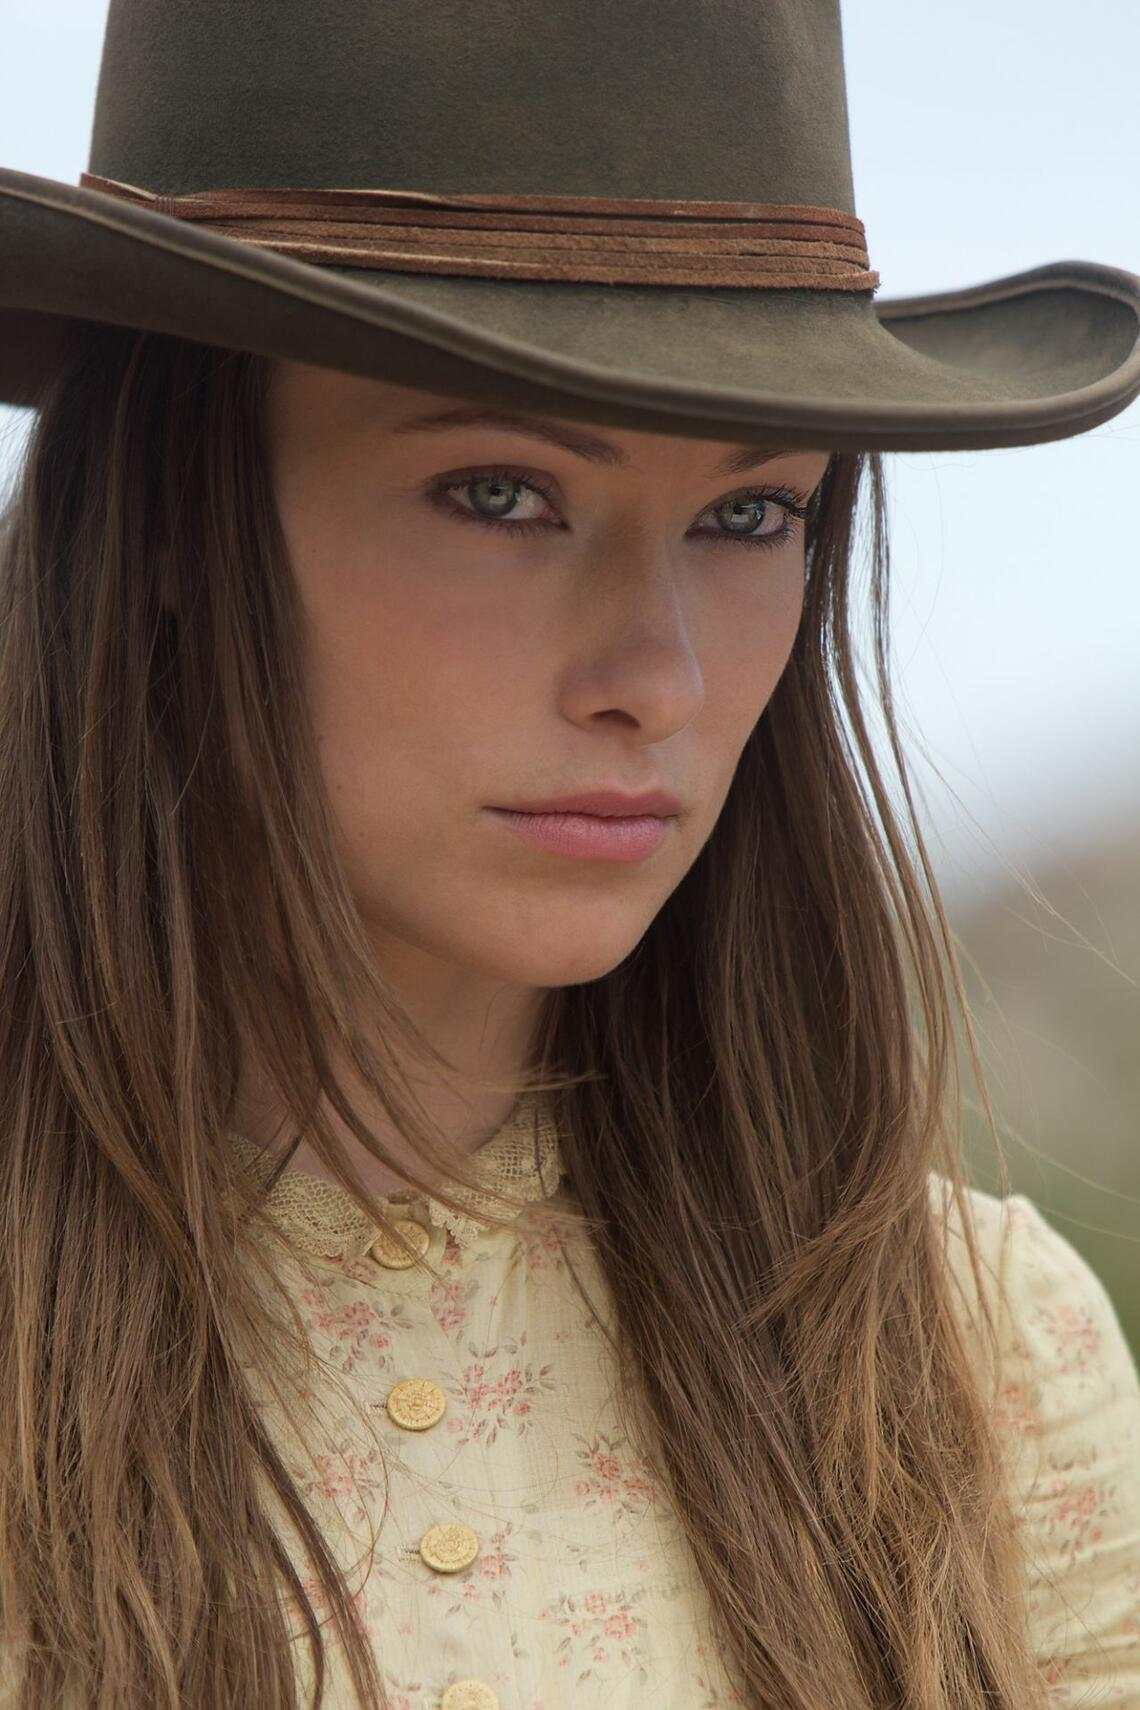 Olivia Wilde in Cowboys and Aliens